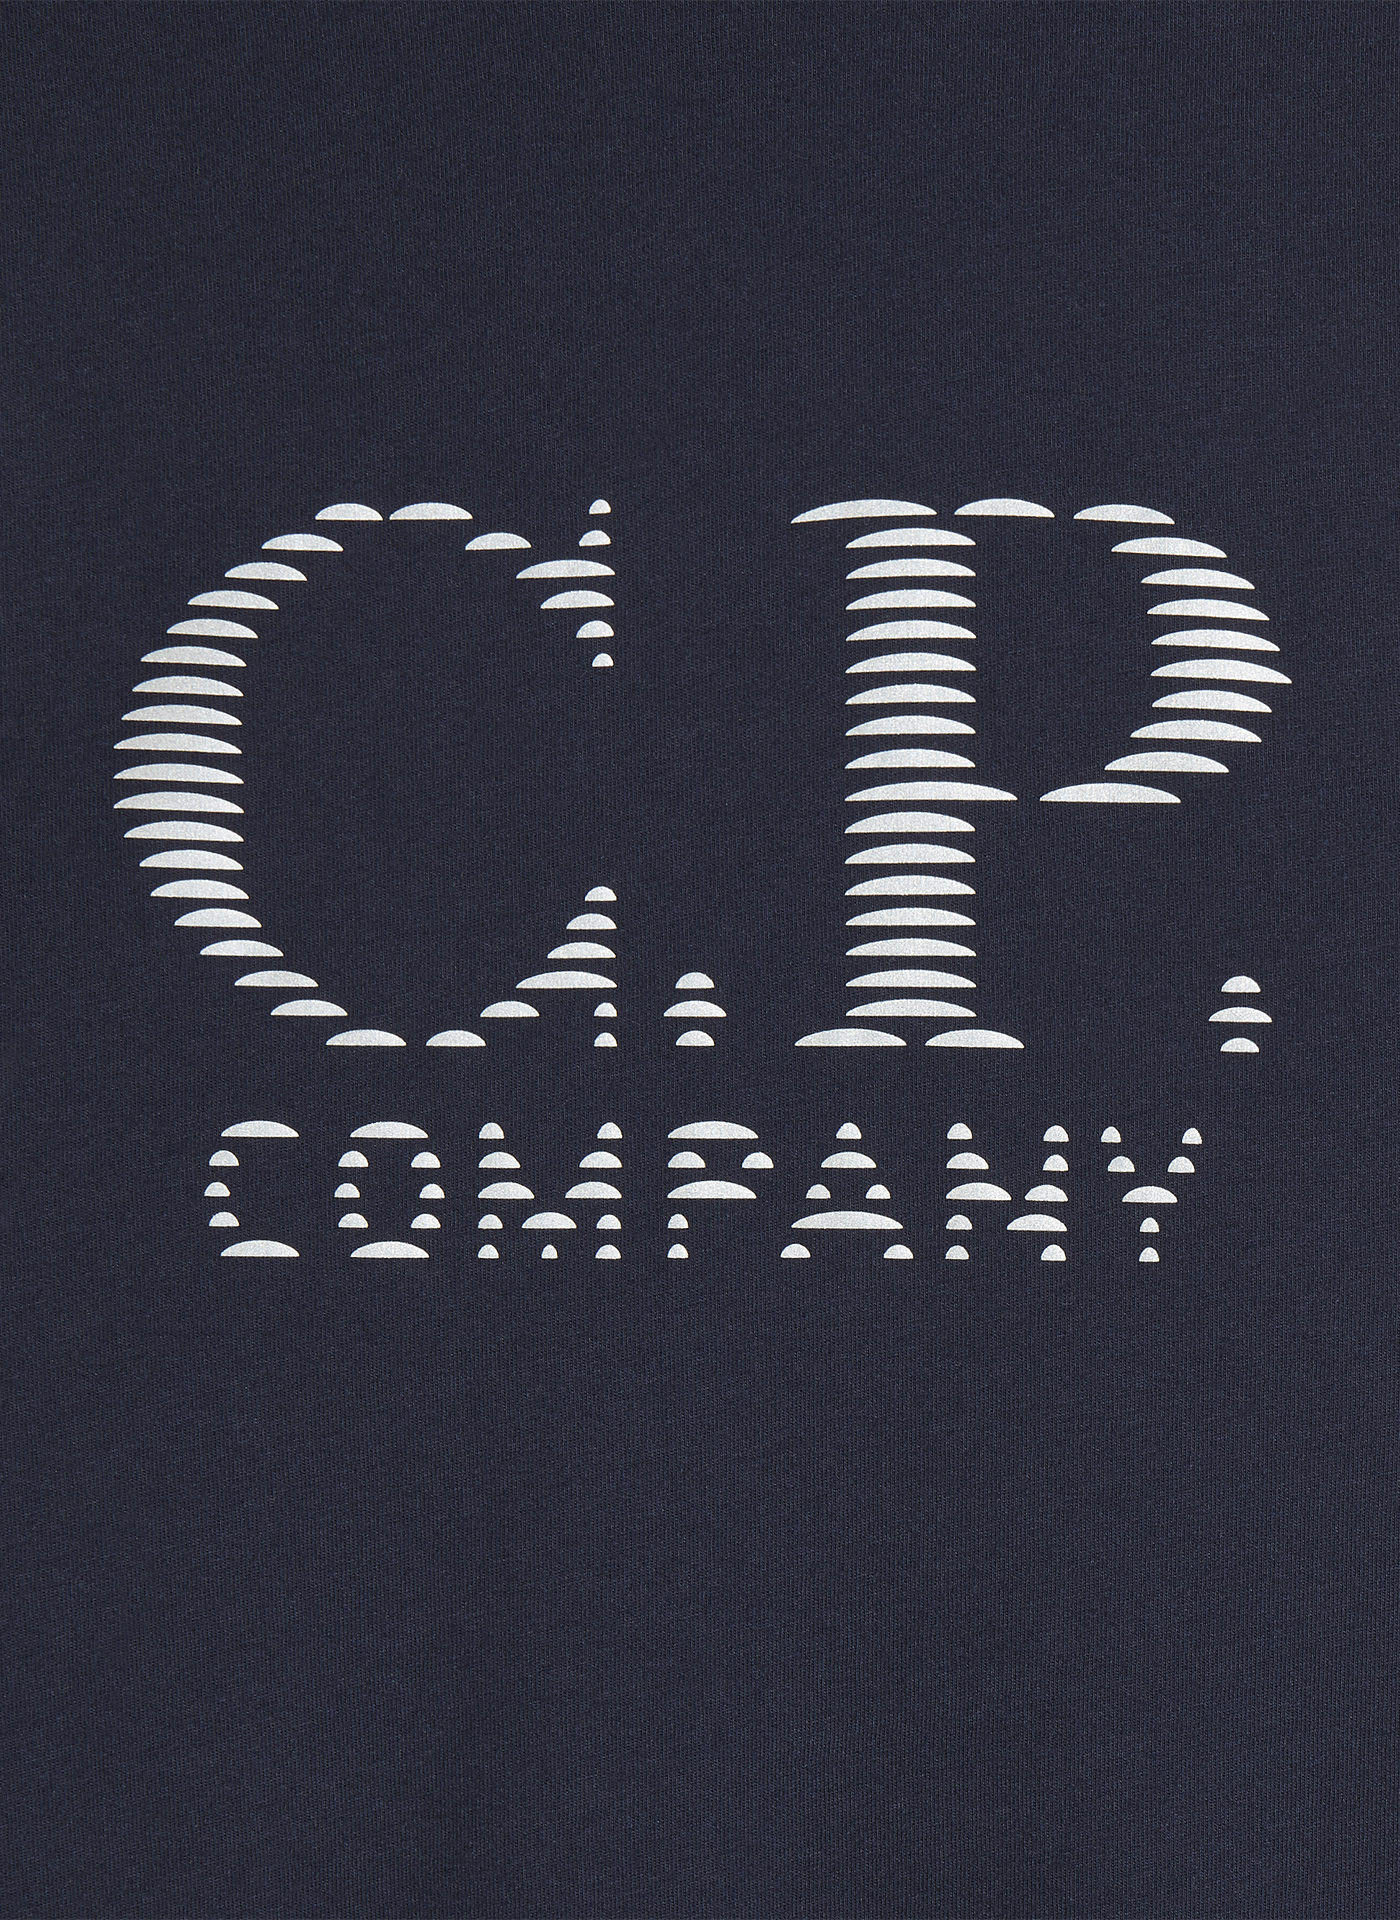 C.P. company logo embroidered in white on dark navy blue textile